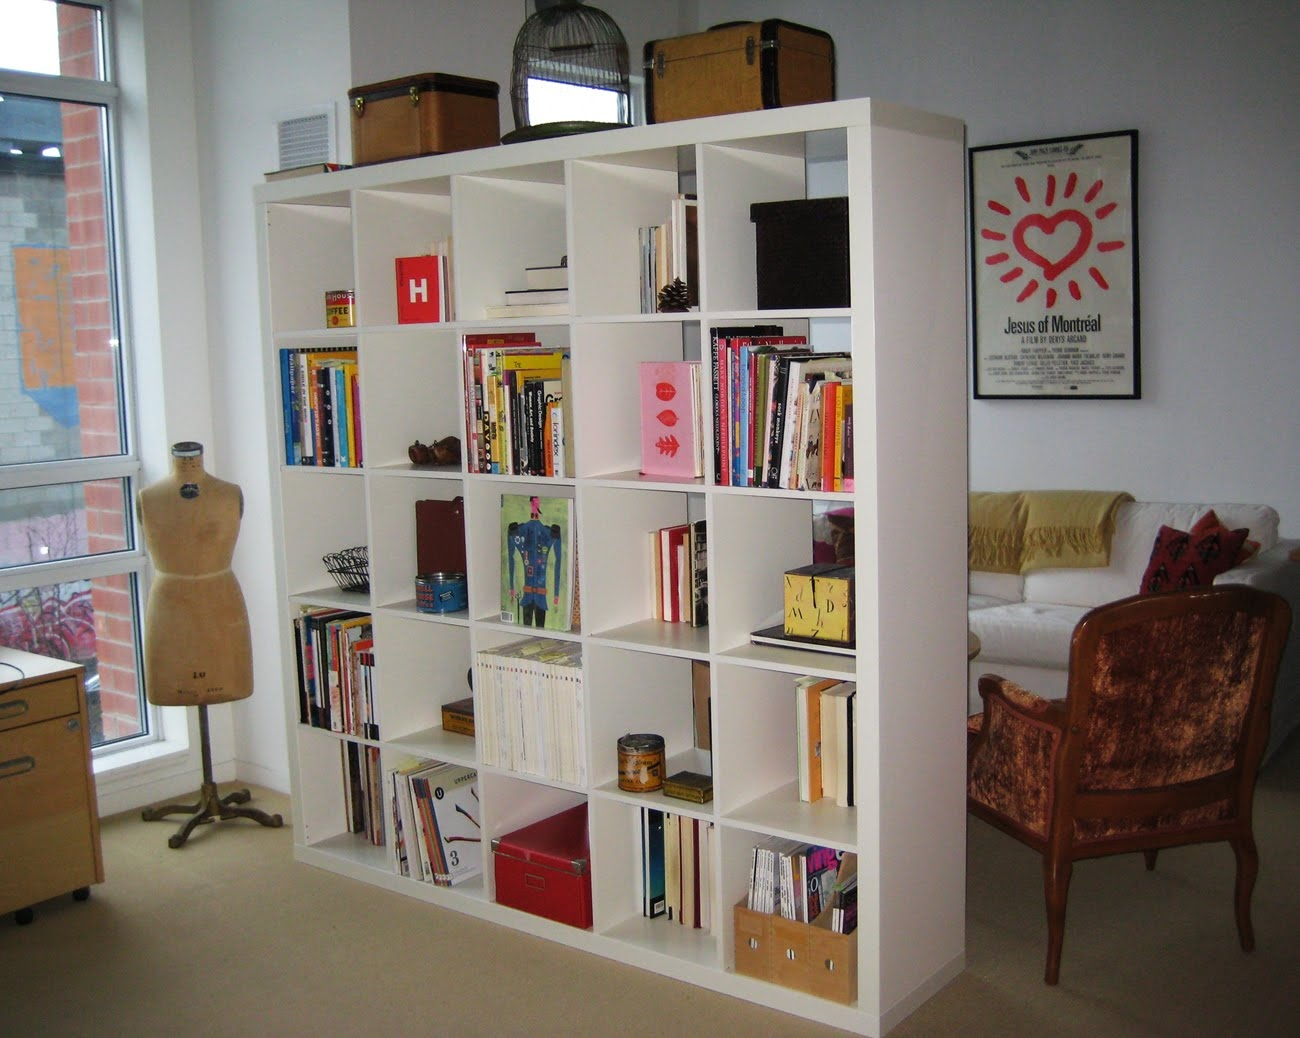 Room Divider Bring Cozy To Your Space With Bookshelf Room Divider In Room Curtain Divider IKEA (Image 22 of 25)